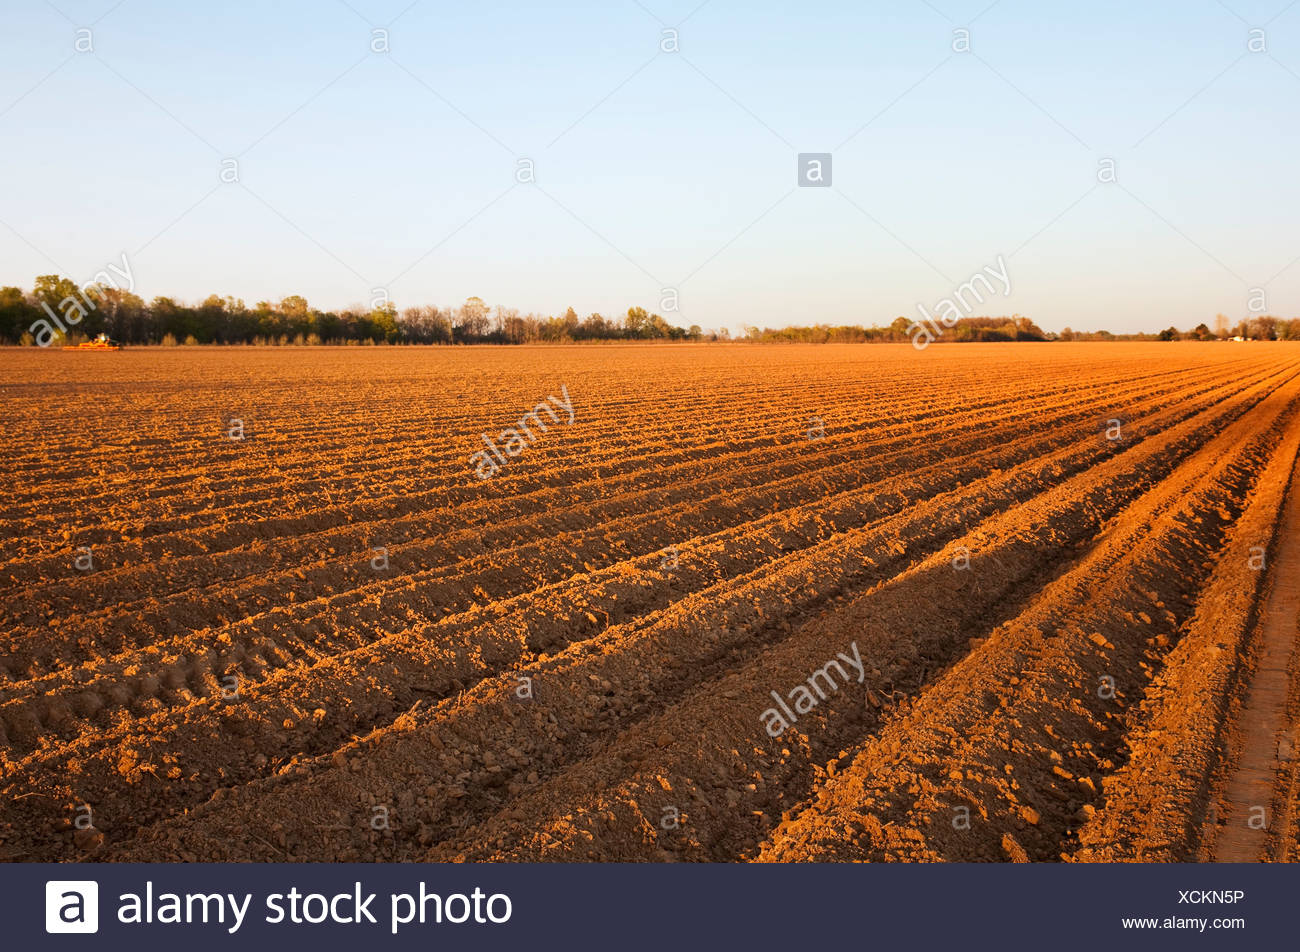 Agriculture - A field of bedded soil that has just been planted to grain corn in late afternoon light / England, Arkansas, USA. - Stock Image